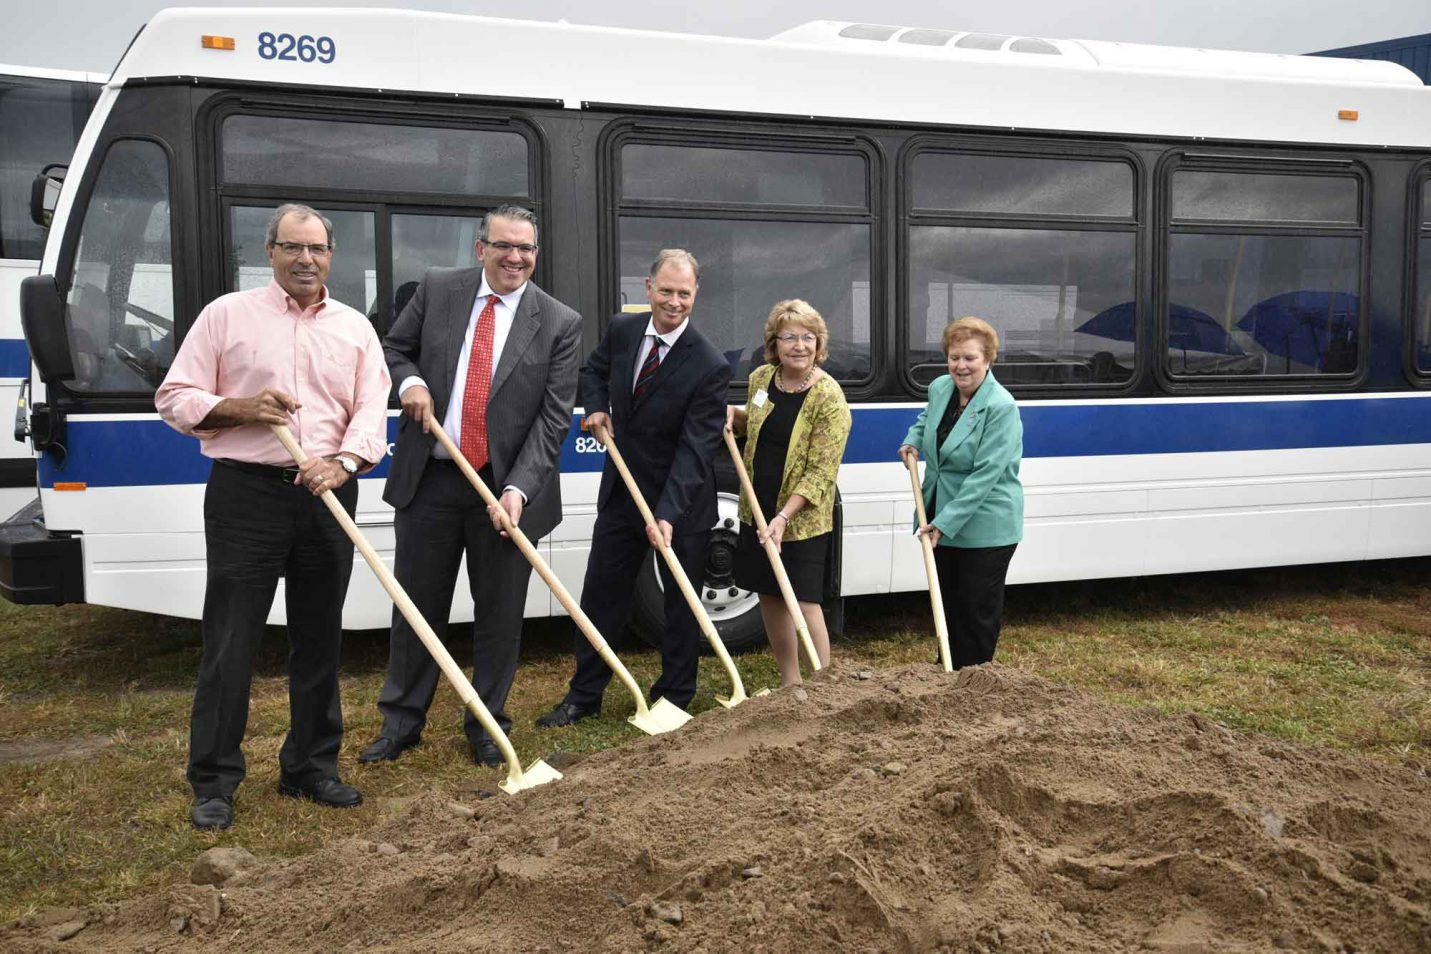 Volvo celebrates the groundbreaking of new customer delivery center serving Nova Bus and Prevost in Plattsburgh